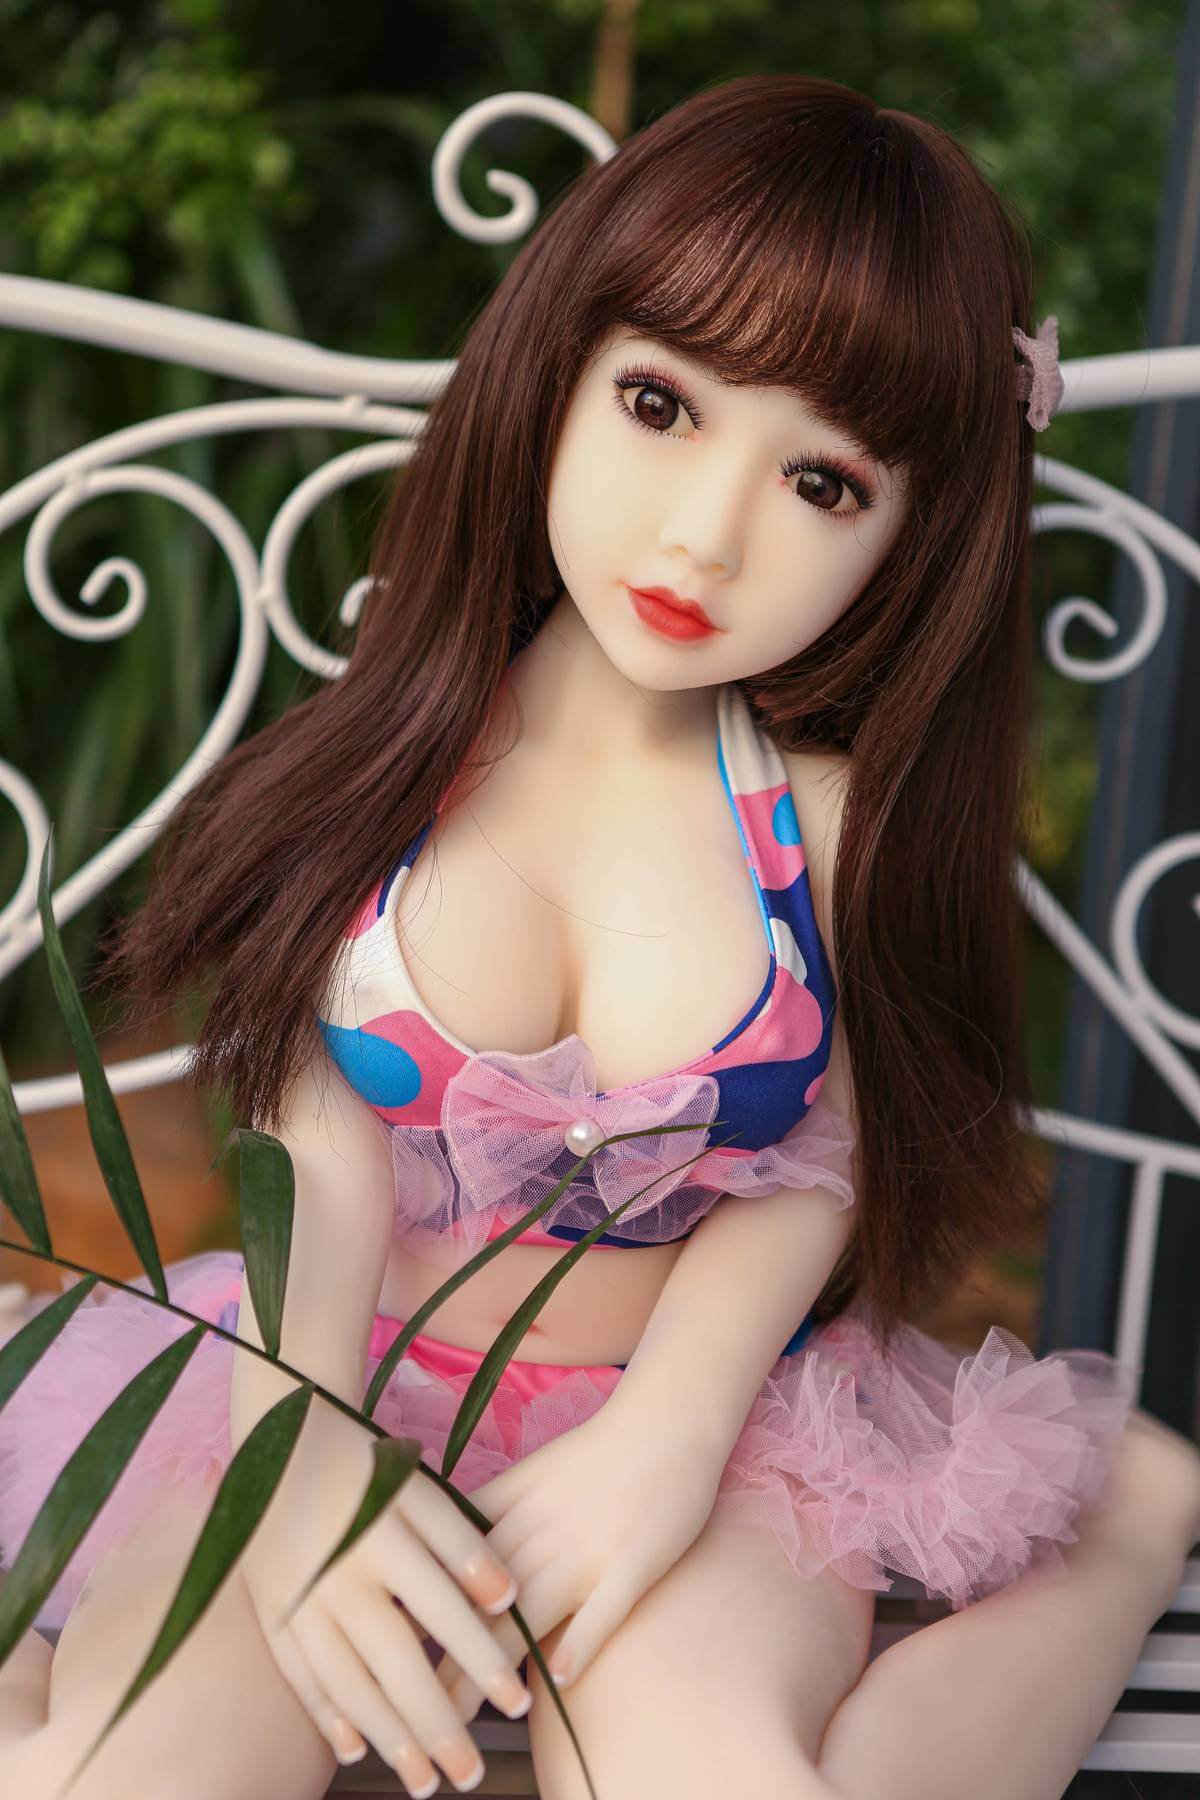 Sex Doll amor pequeno Doll - Lucy